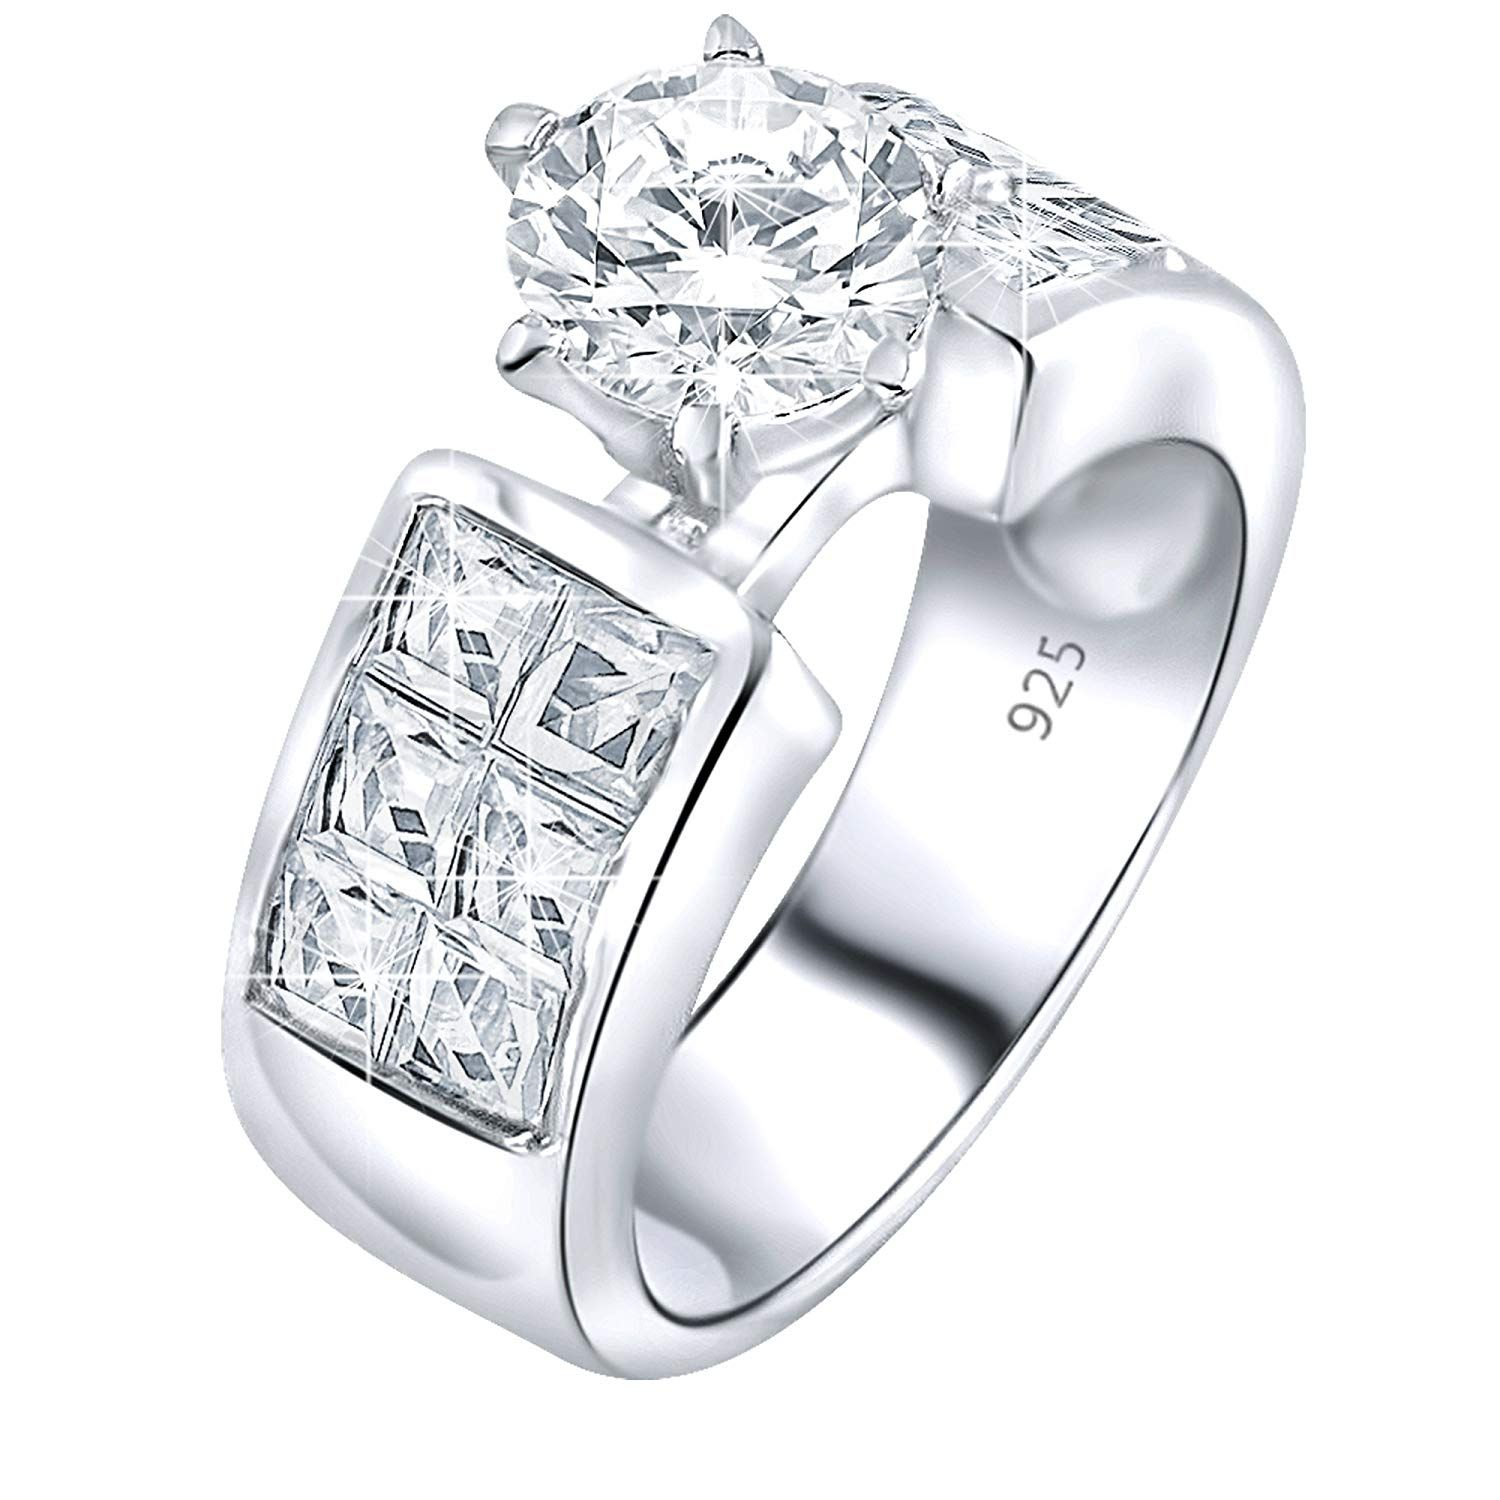 Women's Sterling Silver .925 Engagement Ring 1.13 Carat